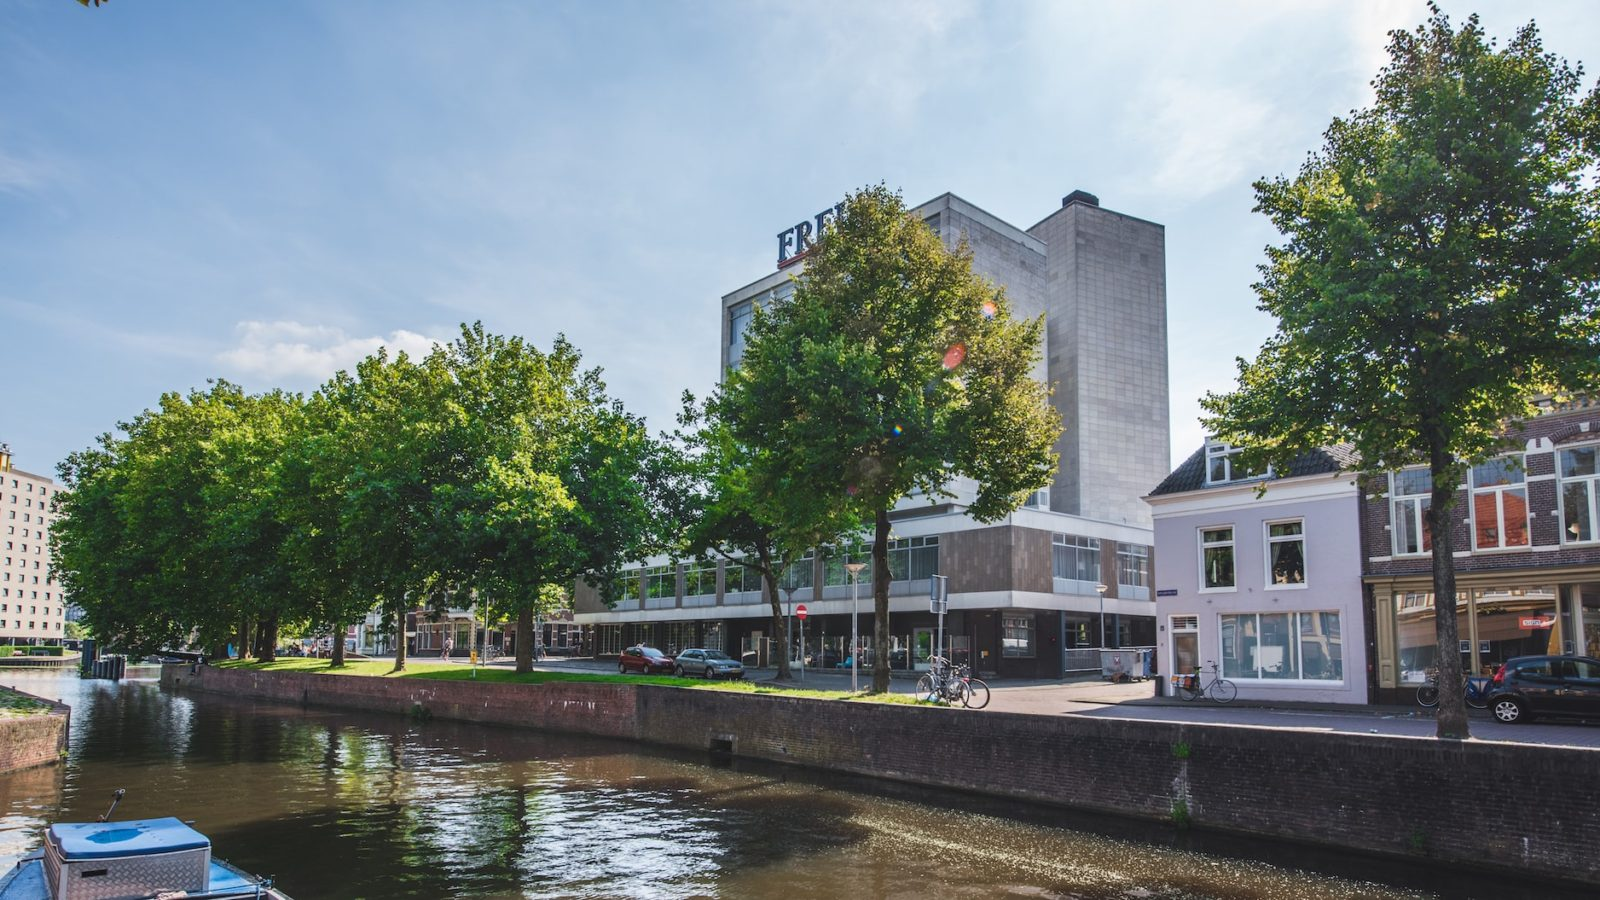 Comfortable Overnight Stay In The City Centre Of Groningen